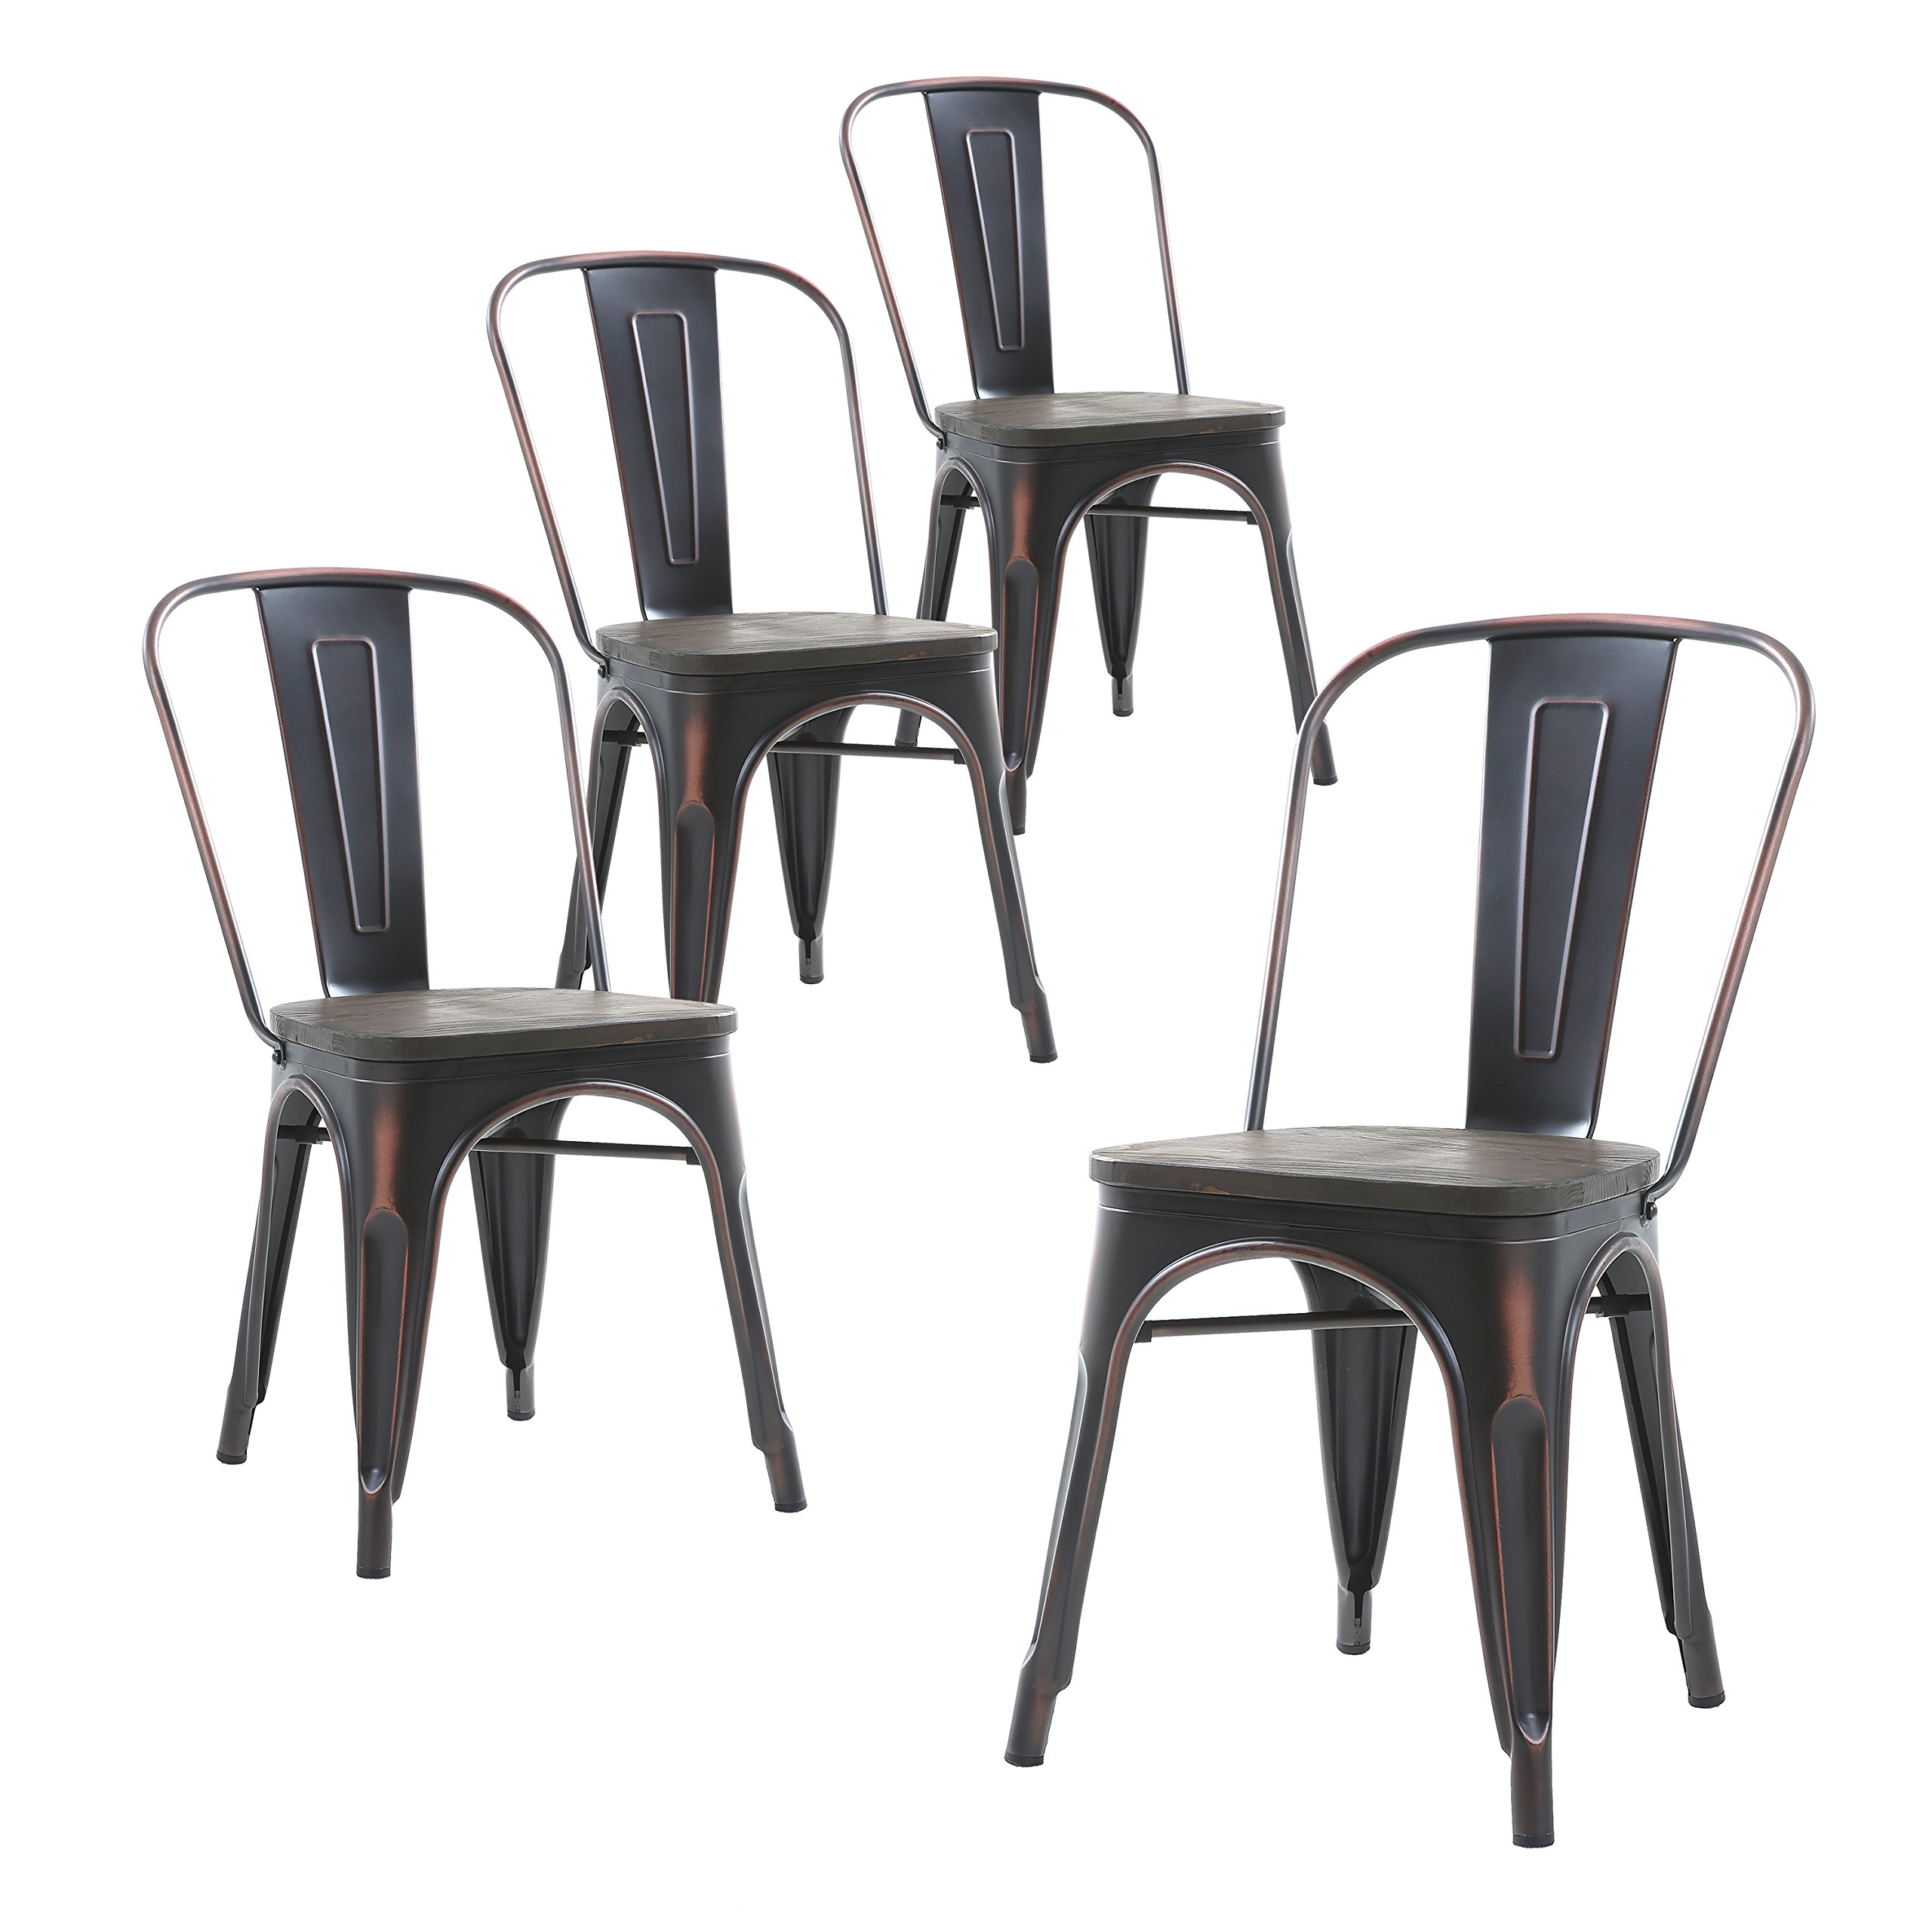 Buschman Set of Four Distressed Black Wooden Seat Tolix-Style Metal Indoor/Outdoor Stackable Chairs with Back